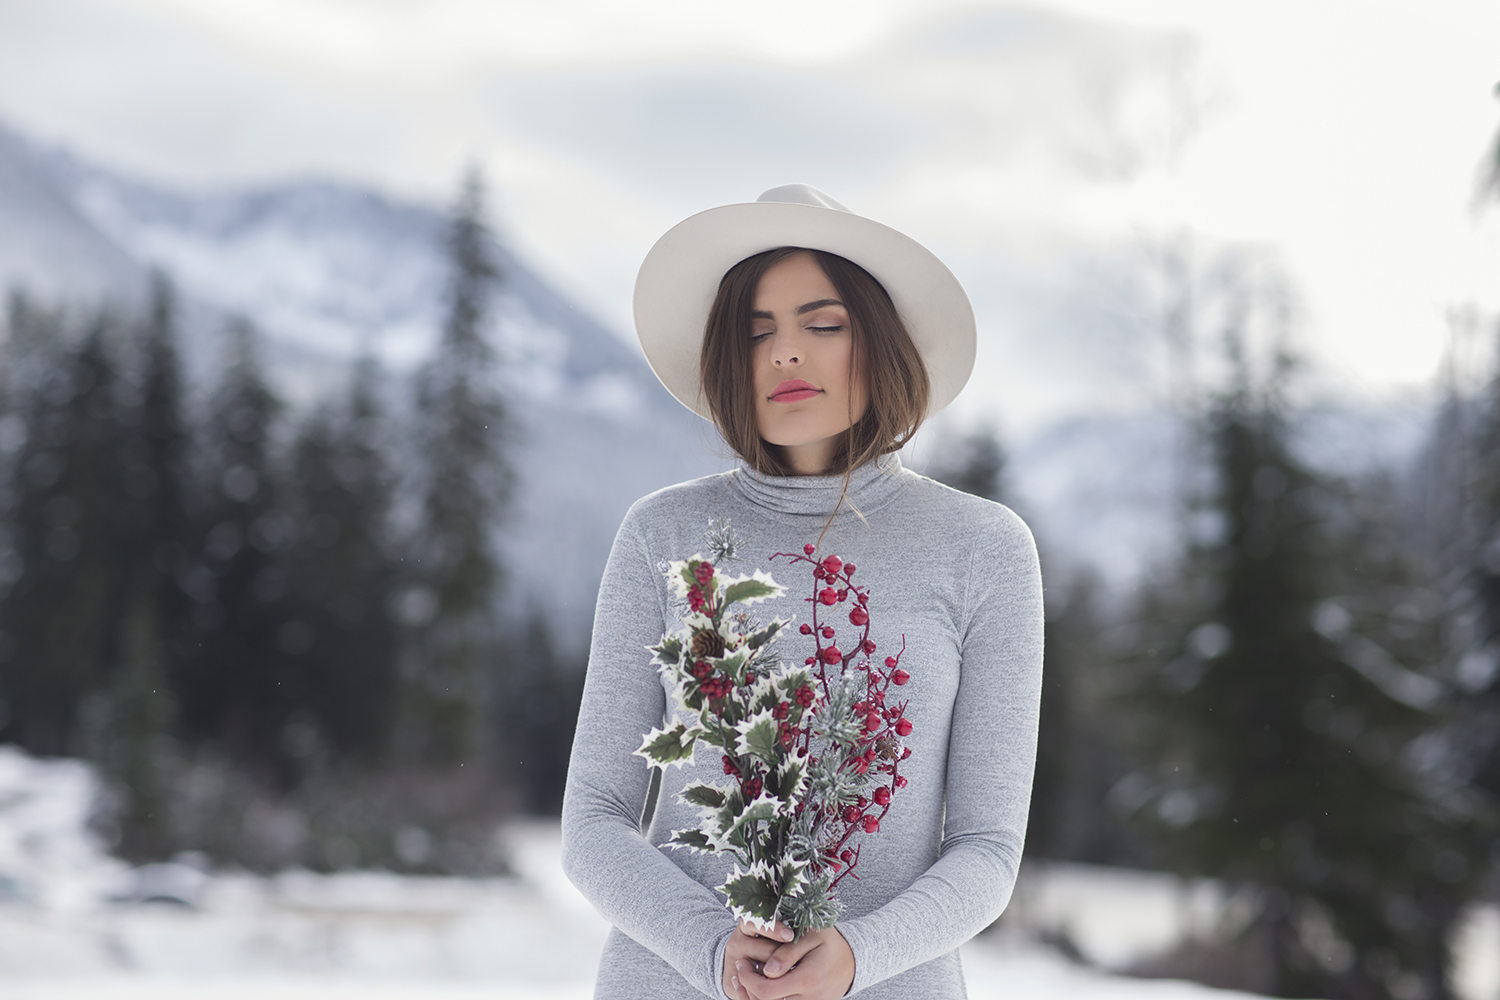 Leavenworth Winter Snow Photoshoot for Gentle Fawn by Seattle Fashion Photographer Michelle Moore